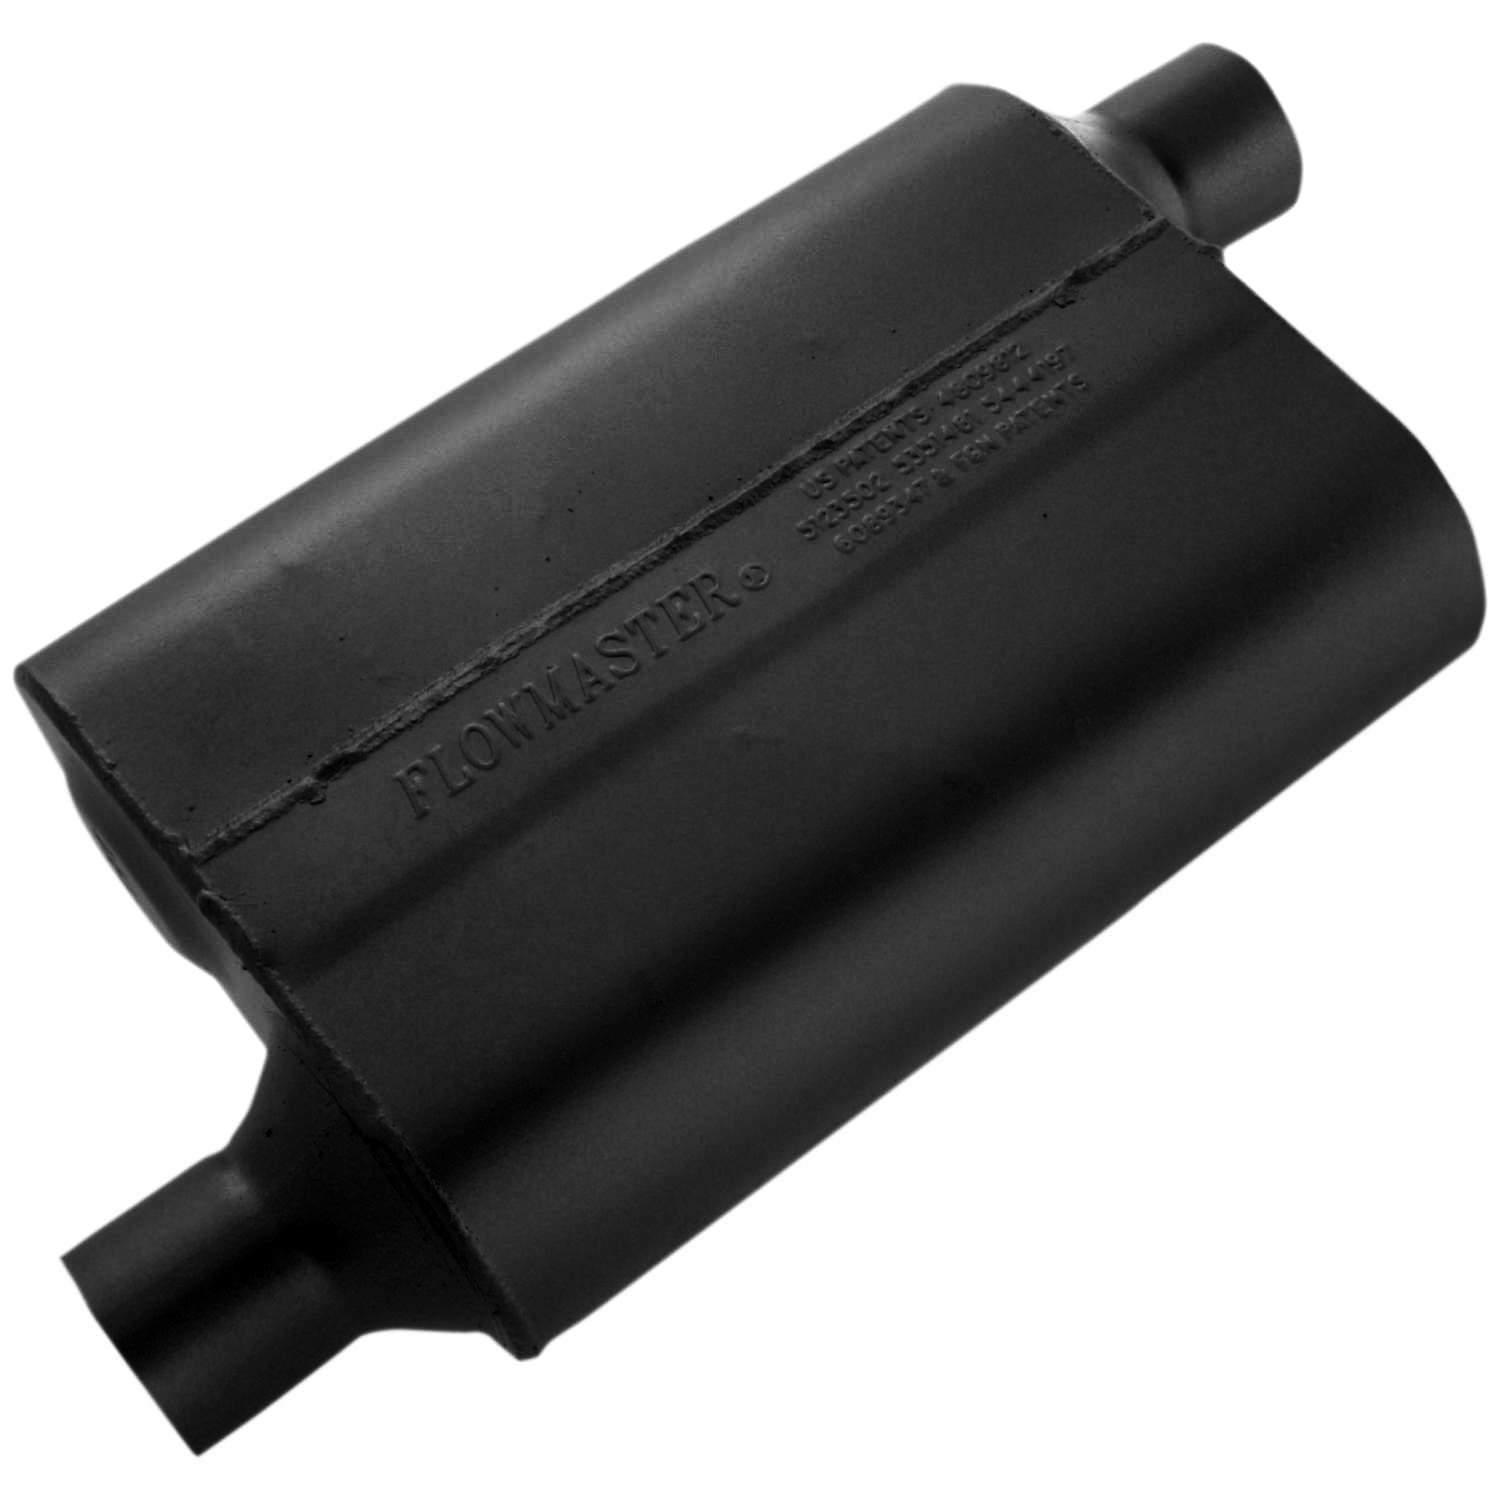 Flowmaster 40 Series Muffler - 2.25 Offset In / 2.25 Offset Out - Aggressive Sound 42443